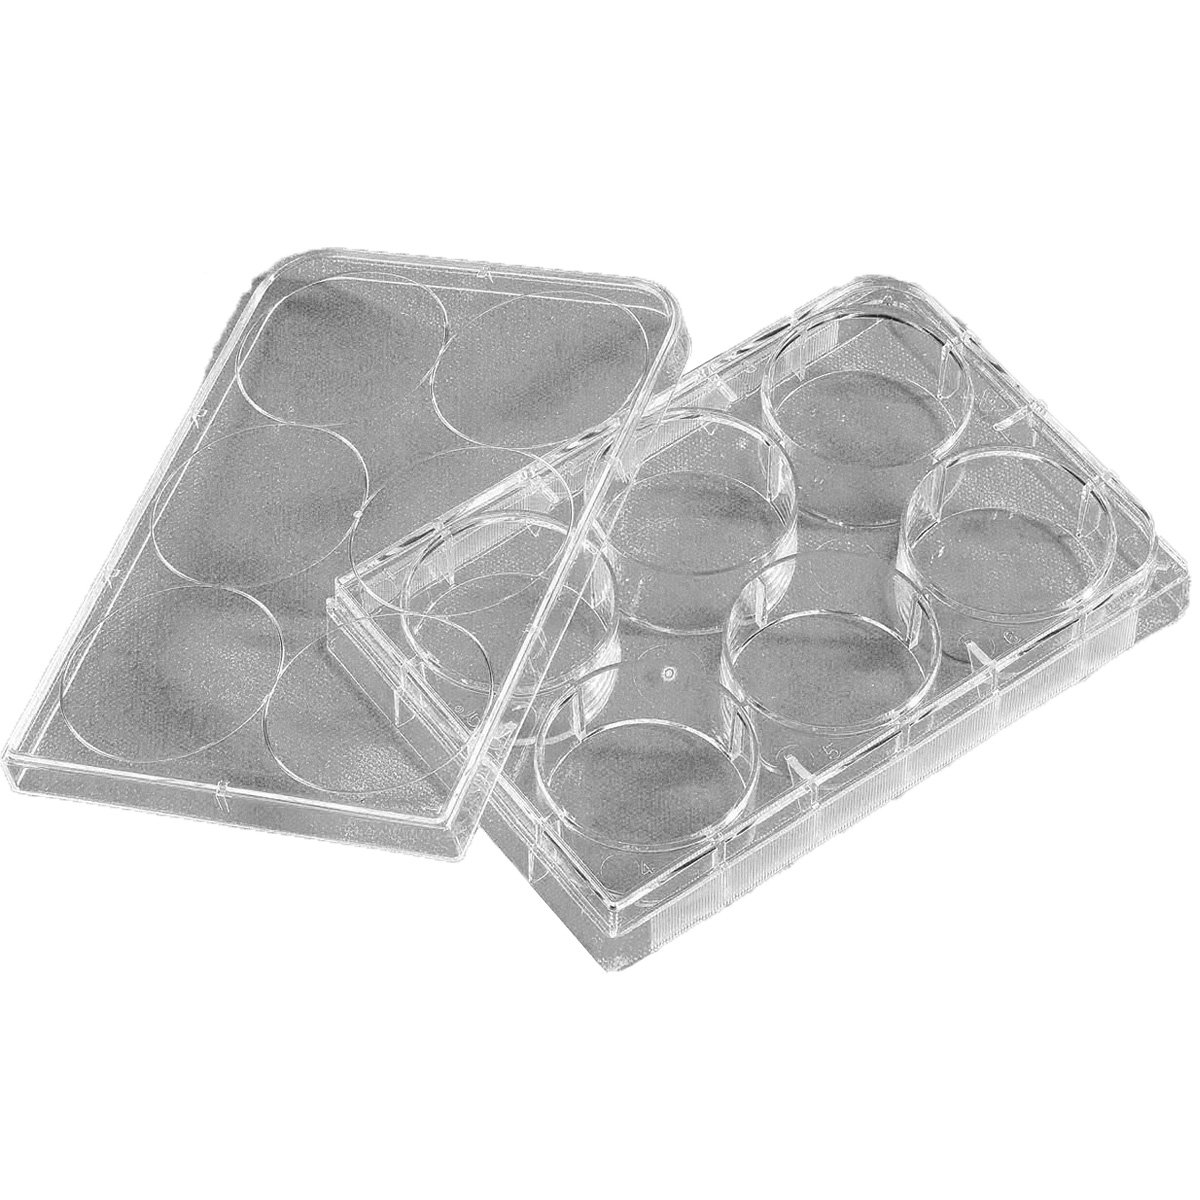 Corning Costar 3471 Polystyrene Sterile Clear Flat Bottom Ultra-Low Attachment Multiple Well Plate with 6 Wells and Lid, 16.8mL Well Volume, Individually Wrapped (Case of 24)